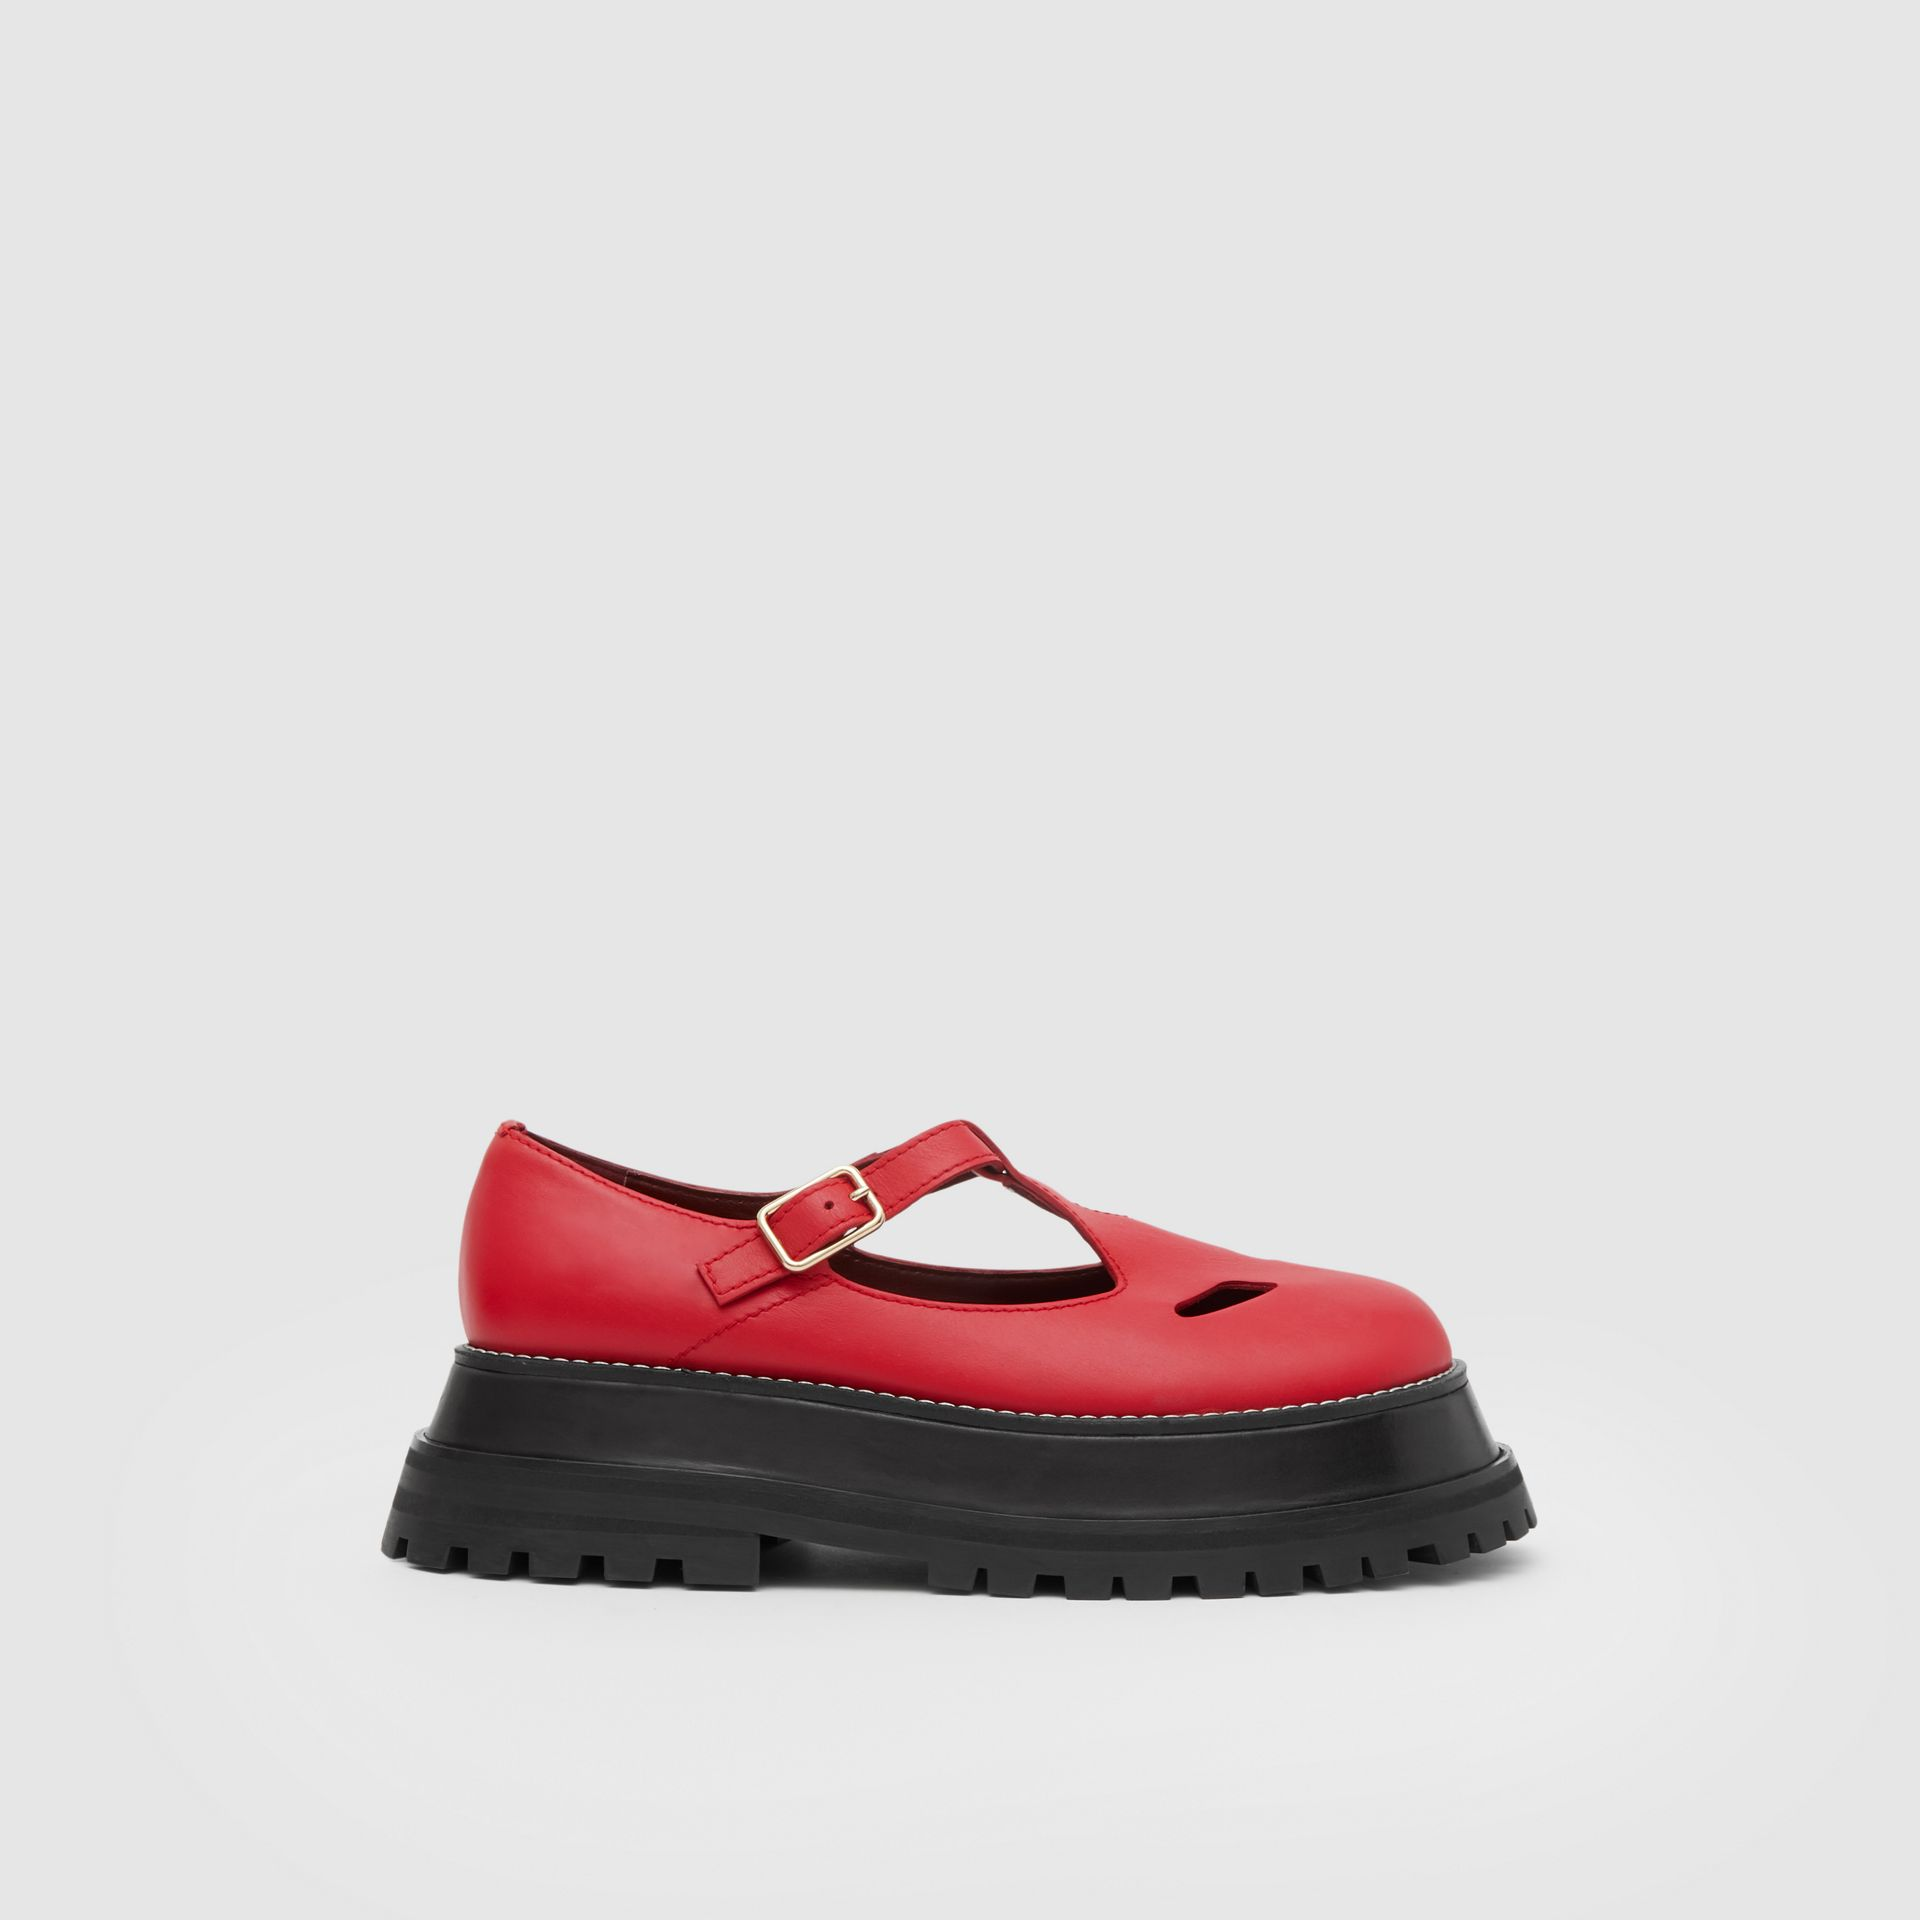 Leather T-bar Shoes in Red - Women | Burberry United Kingdom - gallery image 5